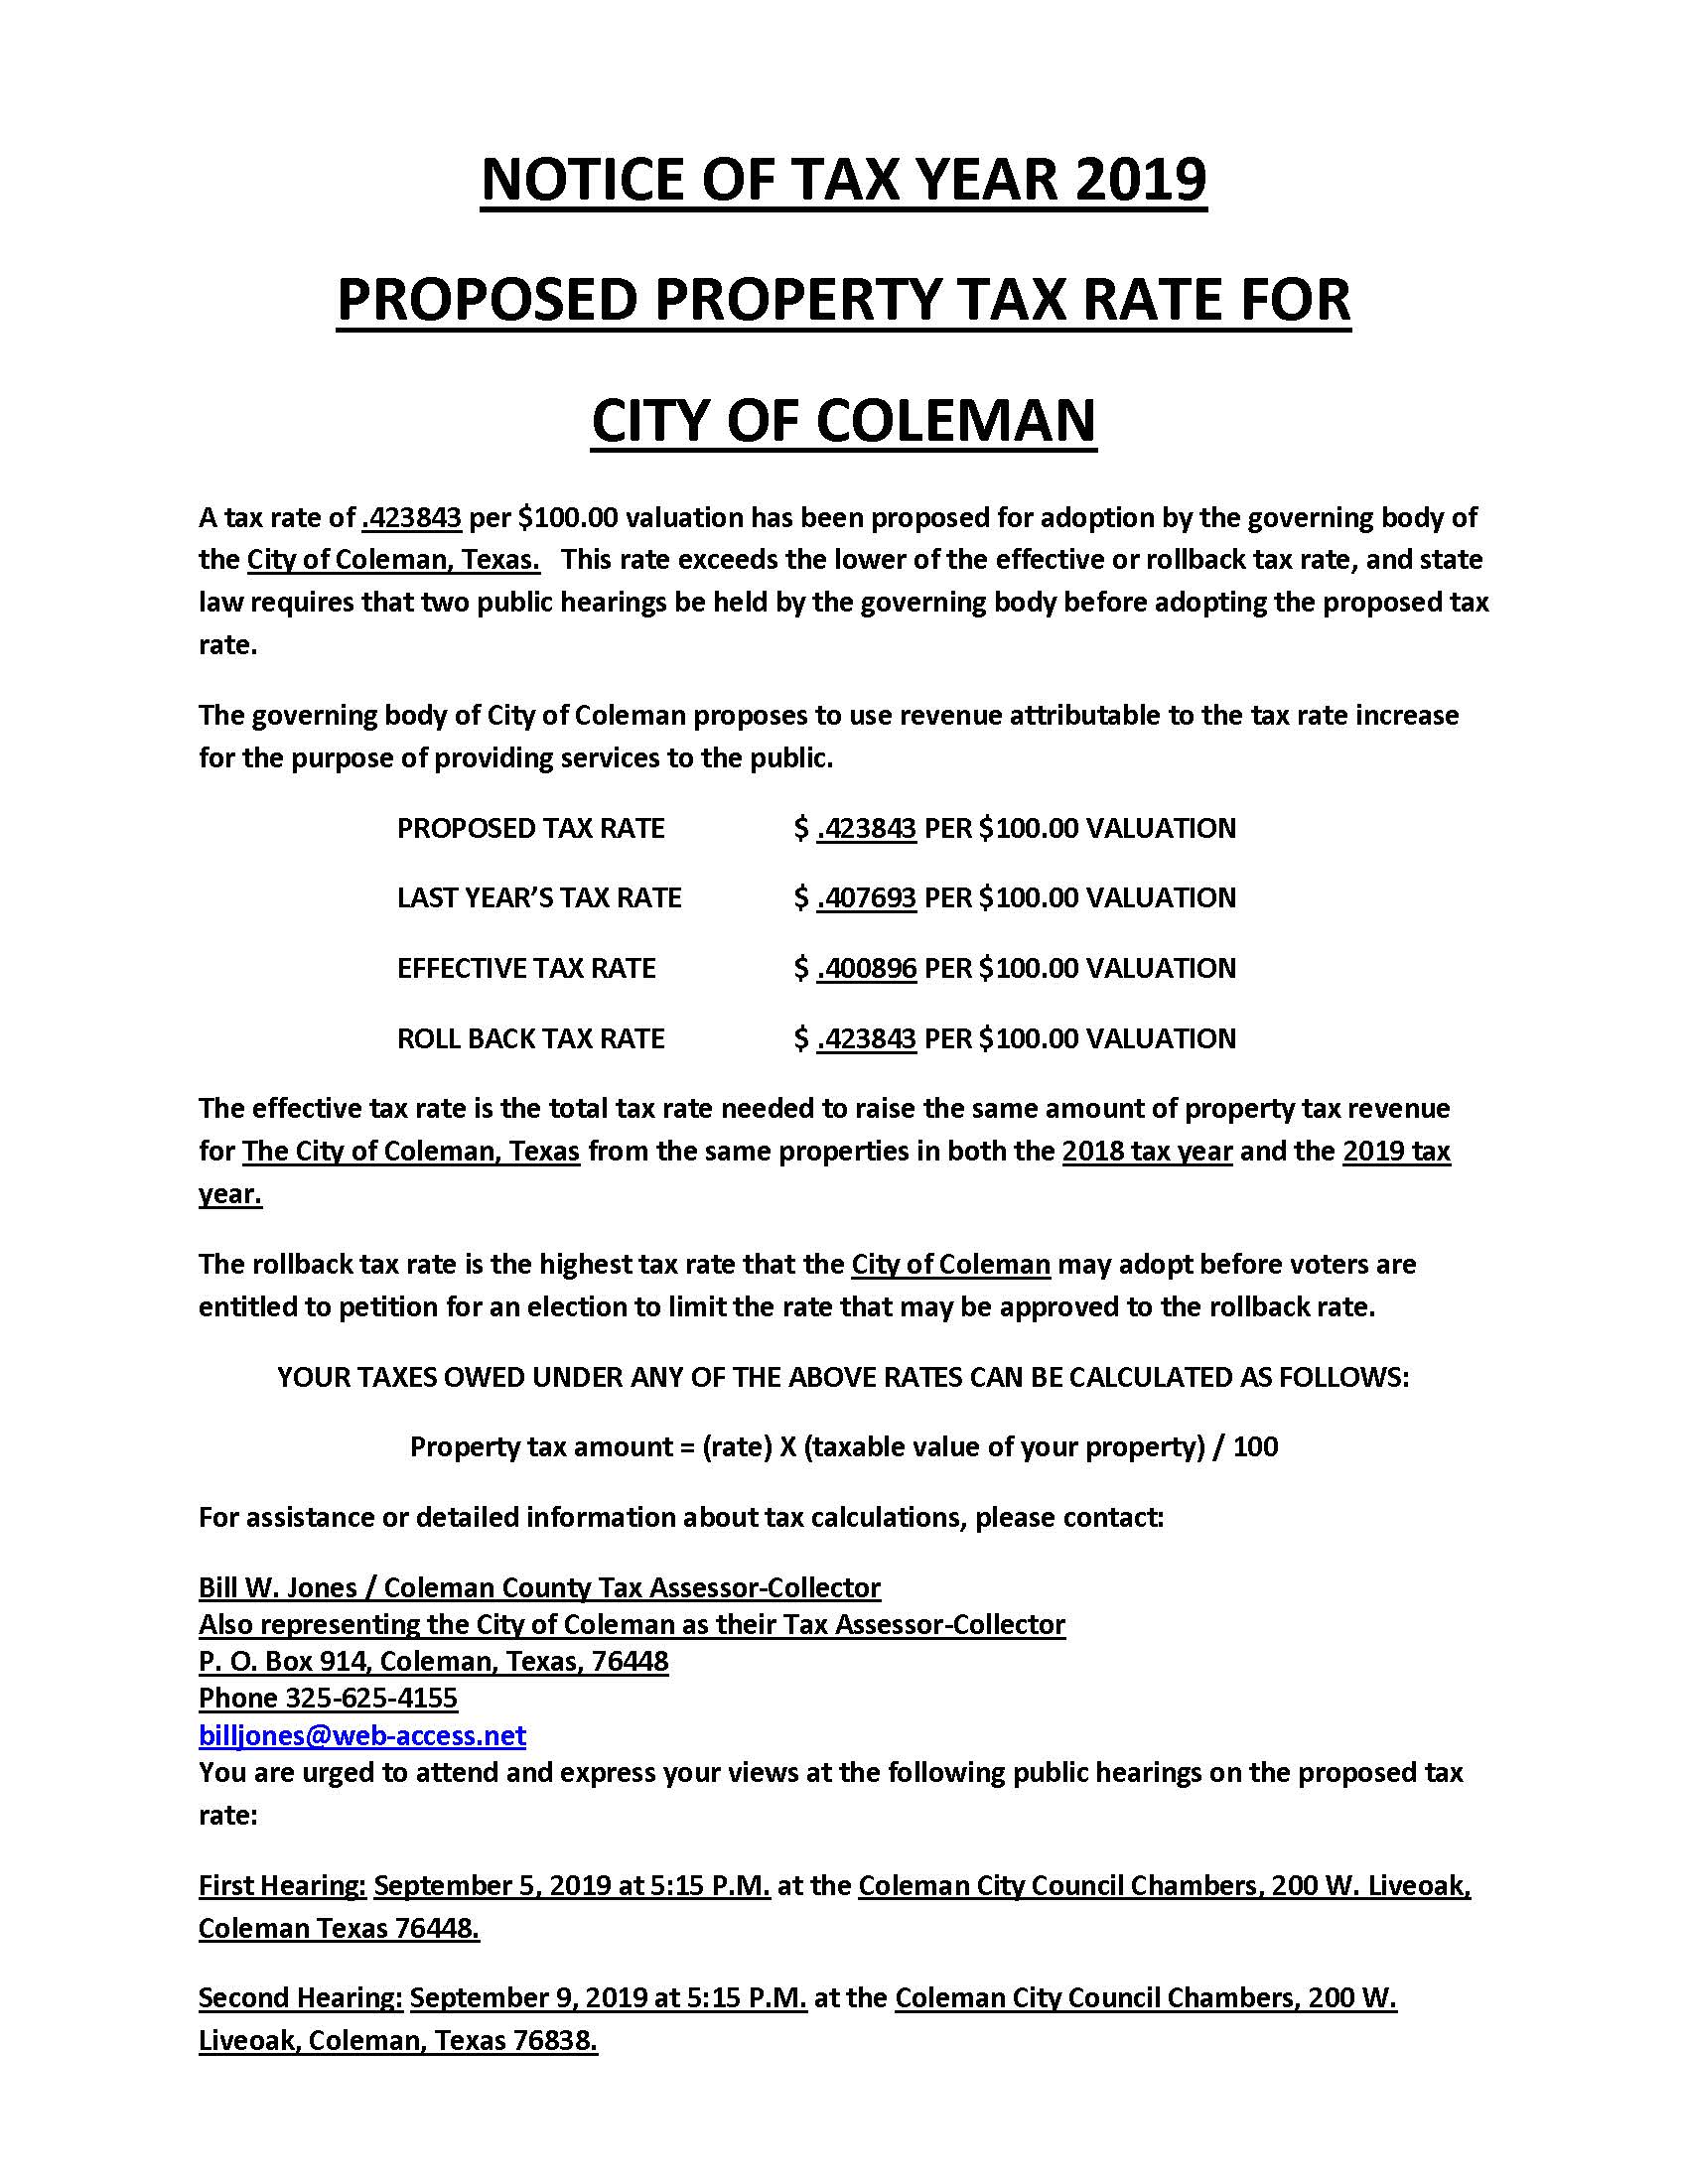 Notice of Tax Rate and Public Hearings